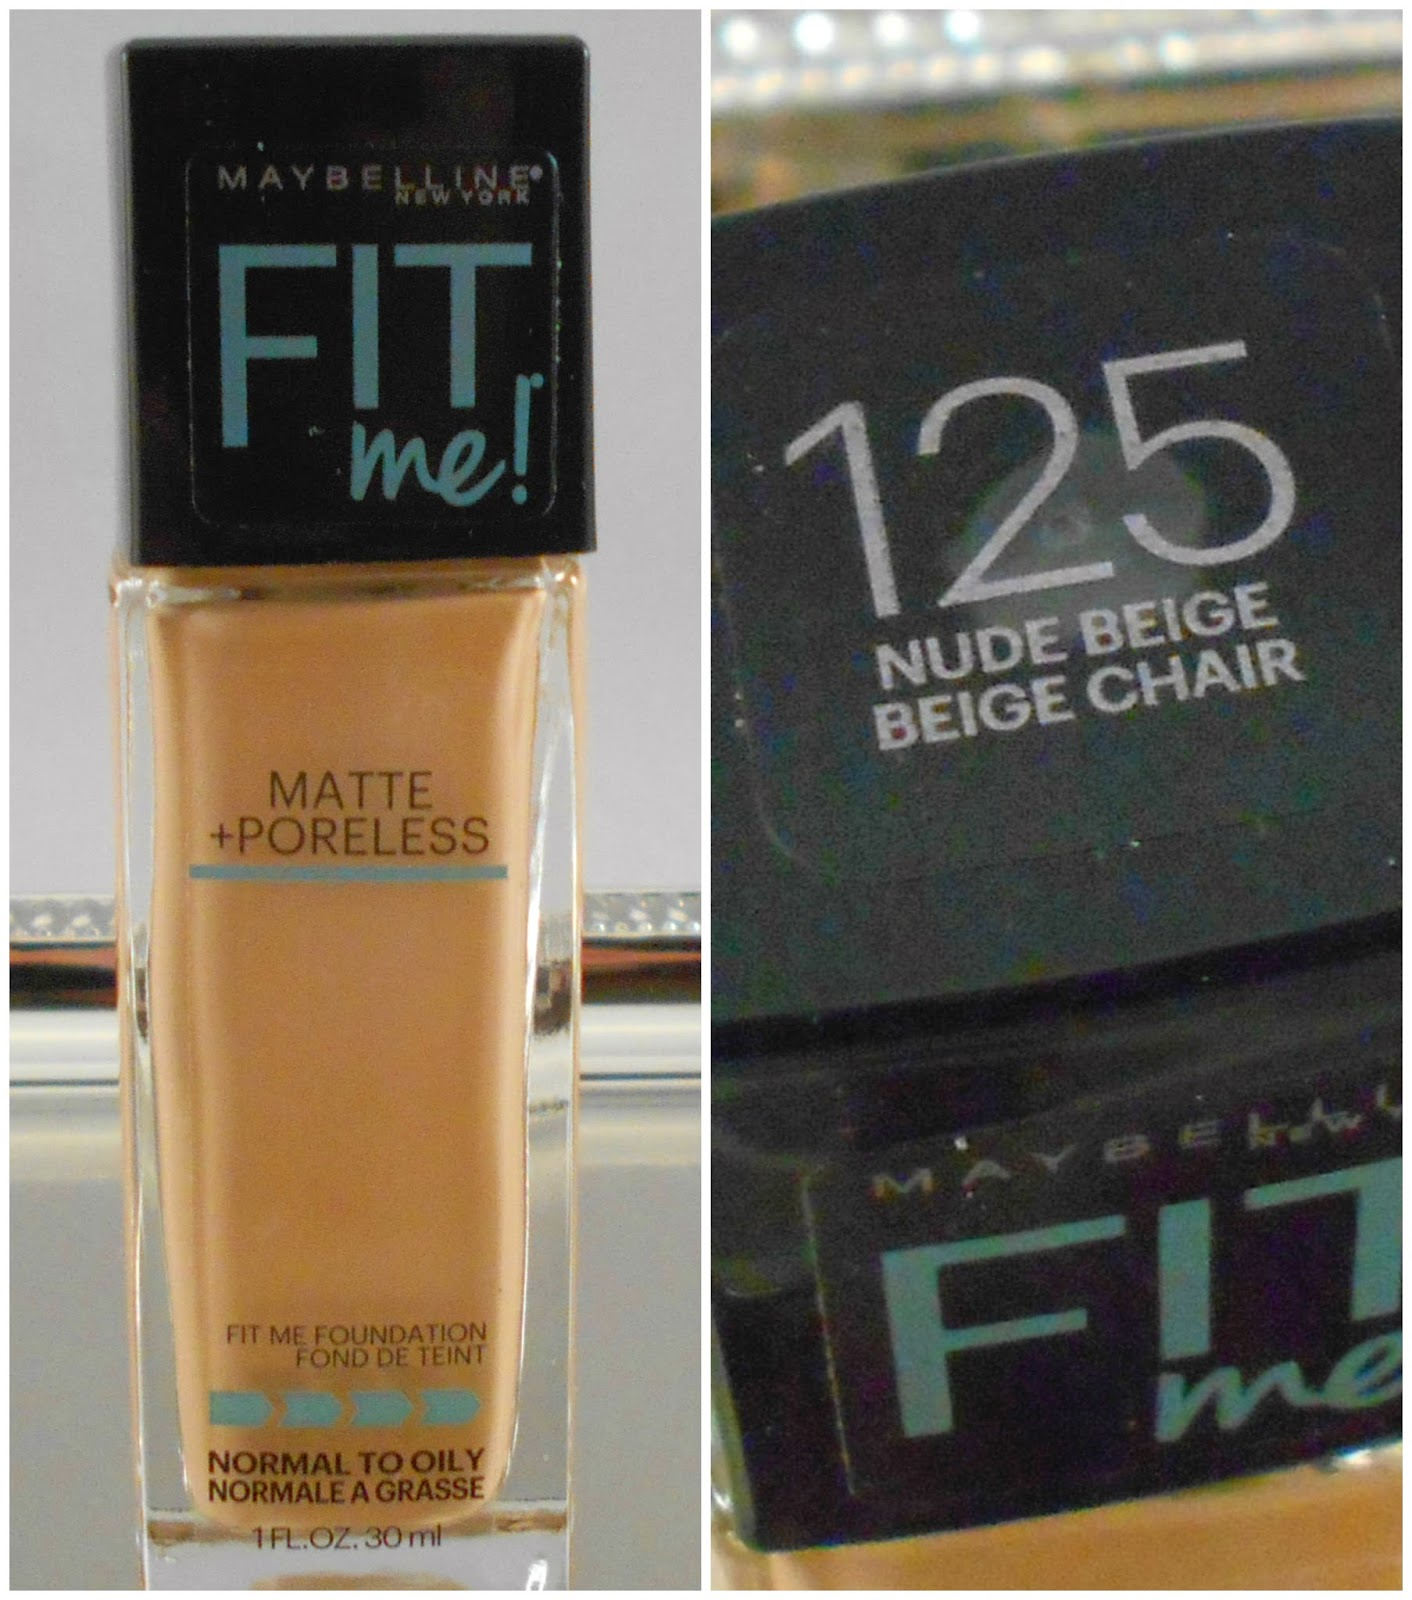 Maybelline Fit Me! Matte & Poreless Foundation + Powder